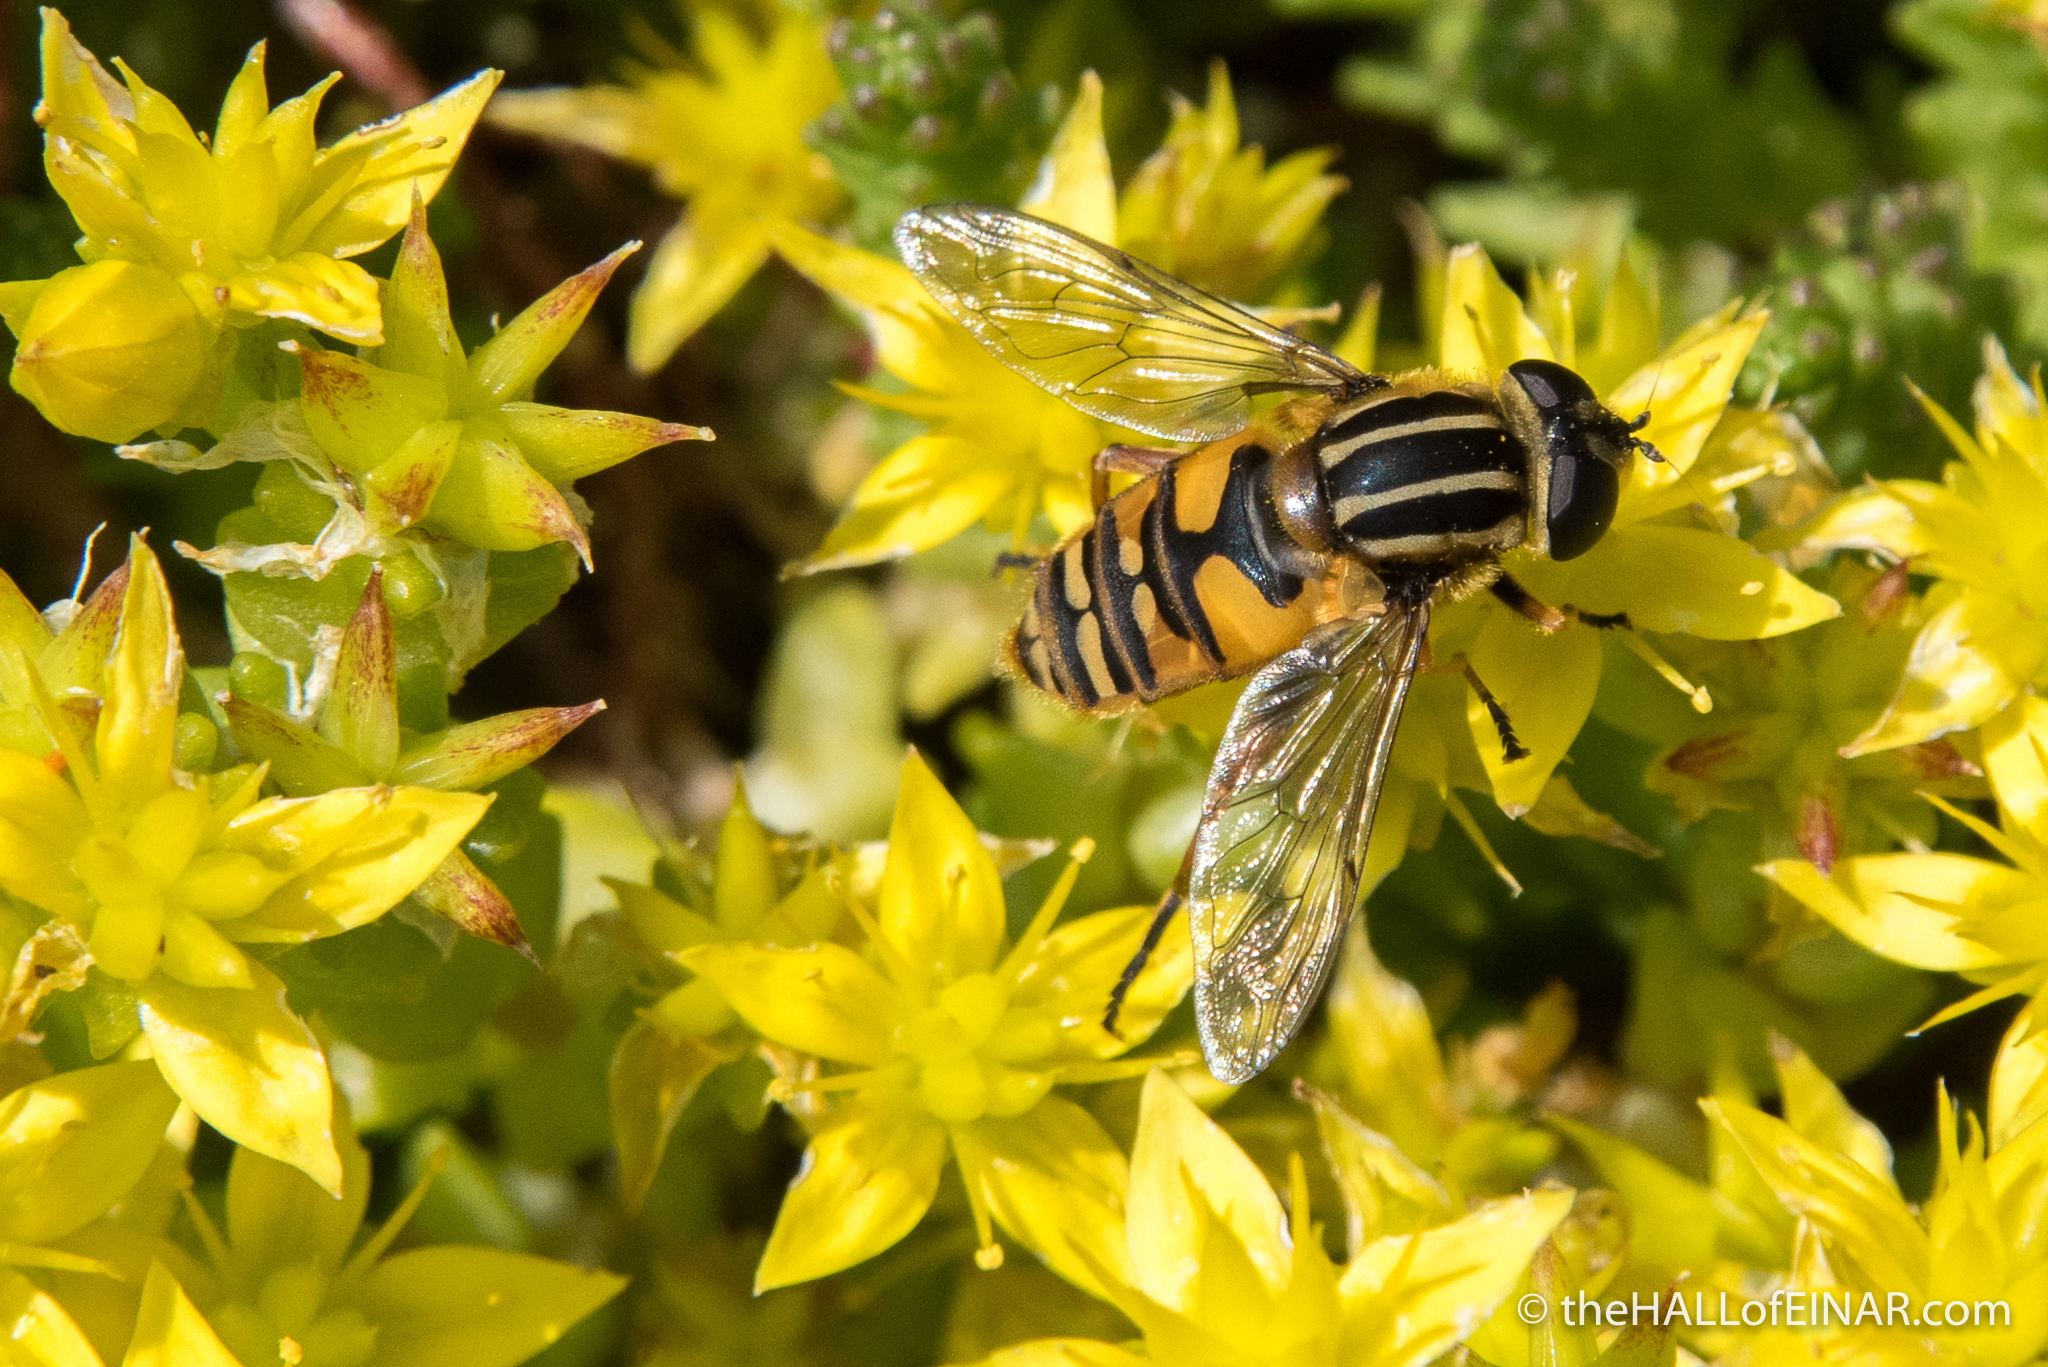 Hoverfly - The Hall of Einar - photograph (c) David Bailey (not the)